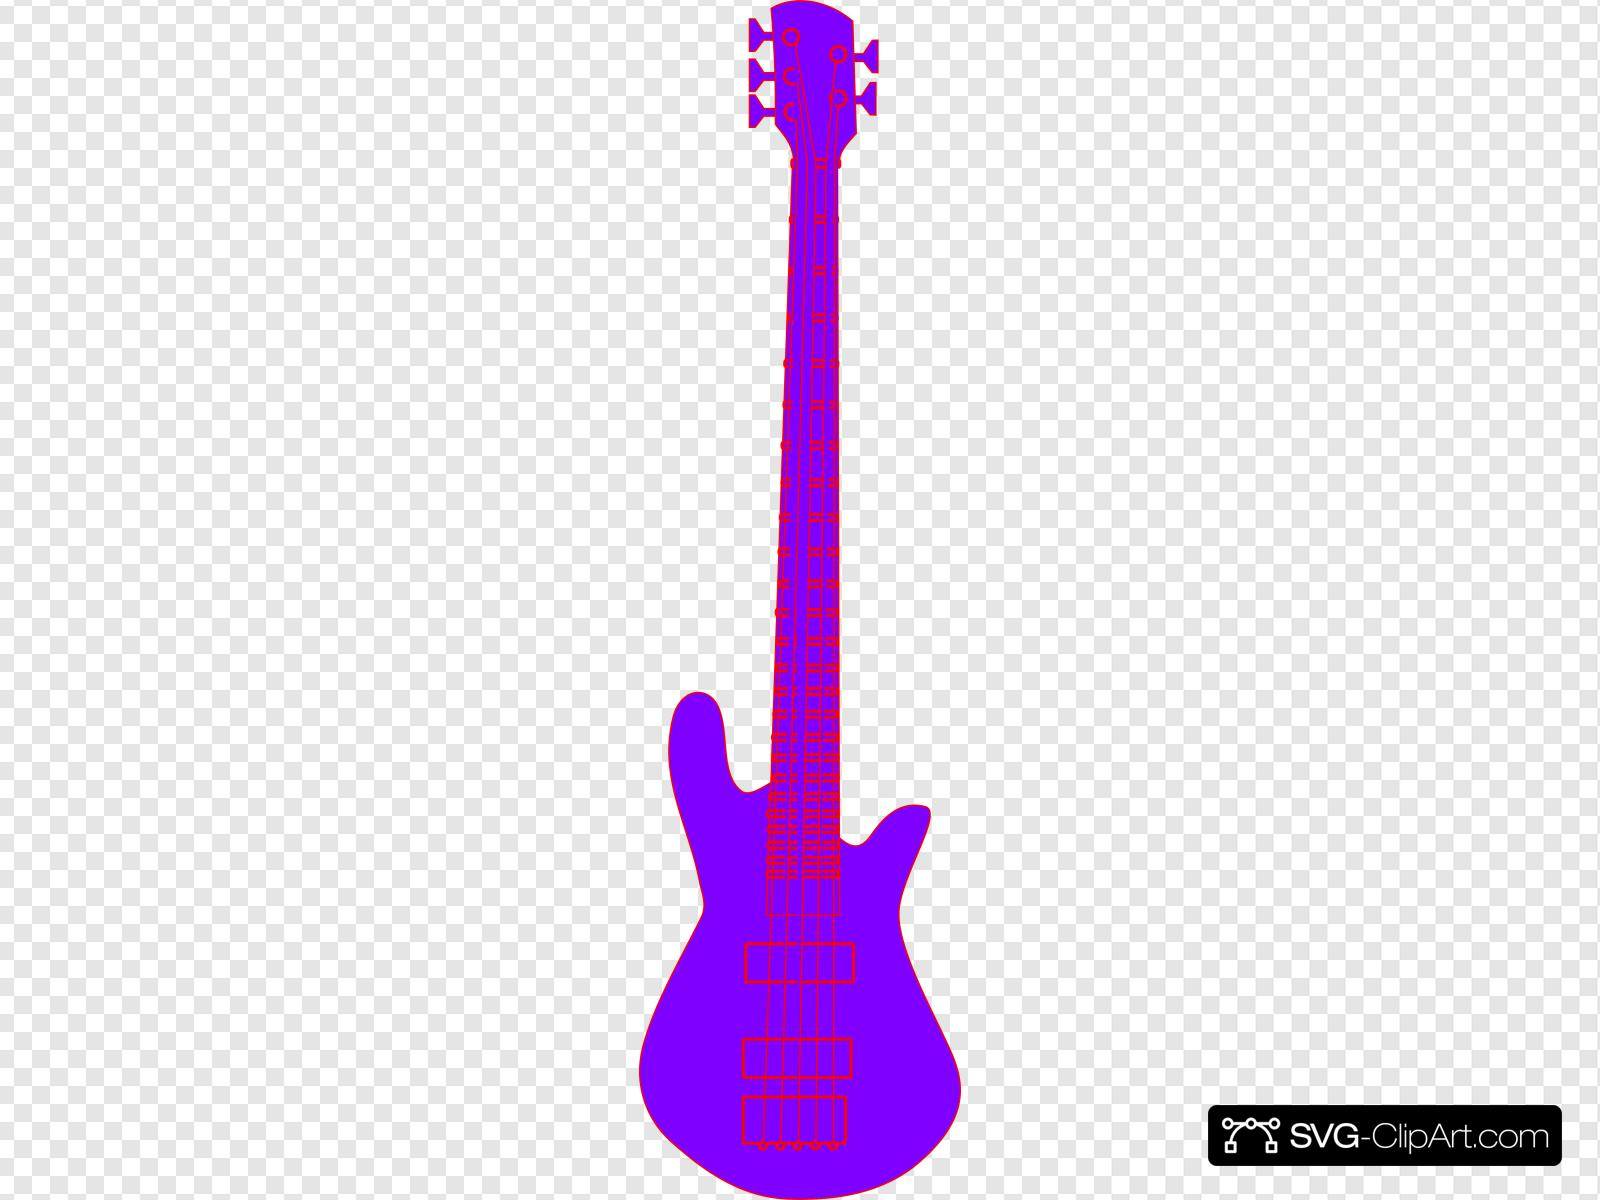 Purple guitar clipart jpg royalty free library Purple Guitar Clip art, Icon and SVG - SVG Clipart jpg royalty free library